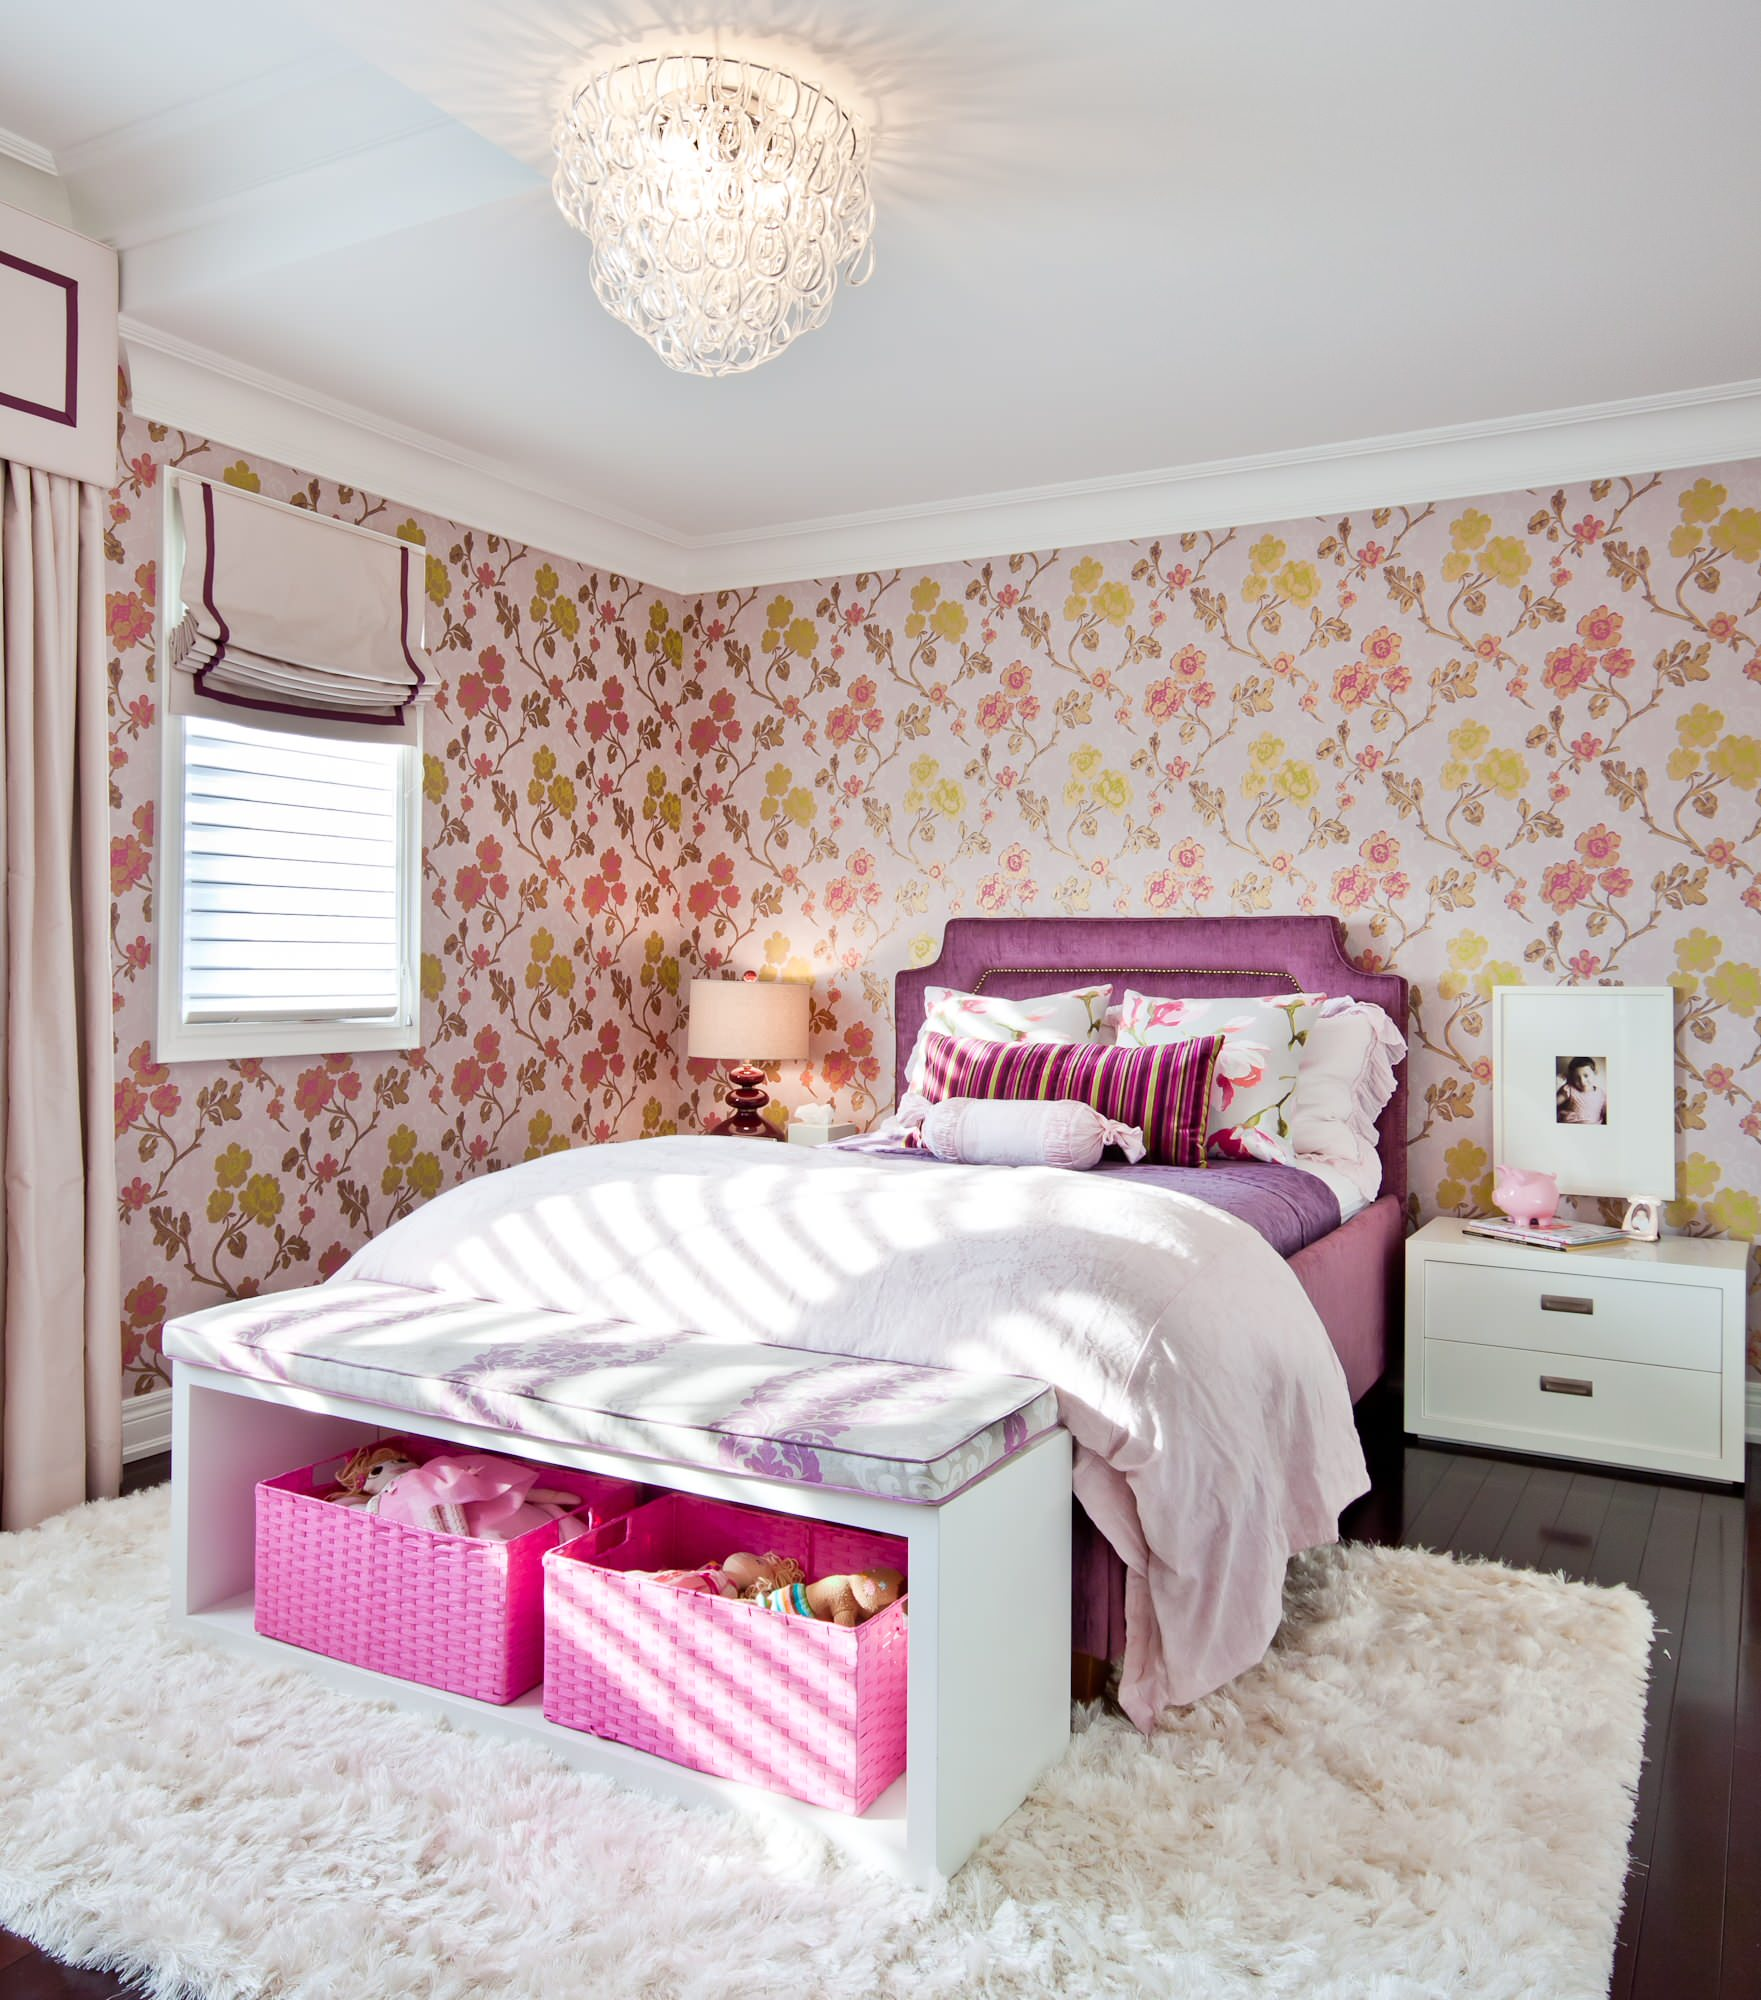 Interesting Room with Interior Decor plus Storage Boxes Ideas: Bedroom Bench And Floral Wallpaper In Girls Room Plus Modern Glass Chandelier With Pink Baskets And Storage Boxes Also Pink Bedroom On Shag Rug And Upholstered Headboard